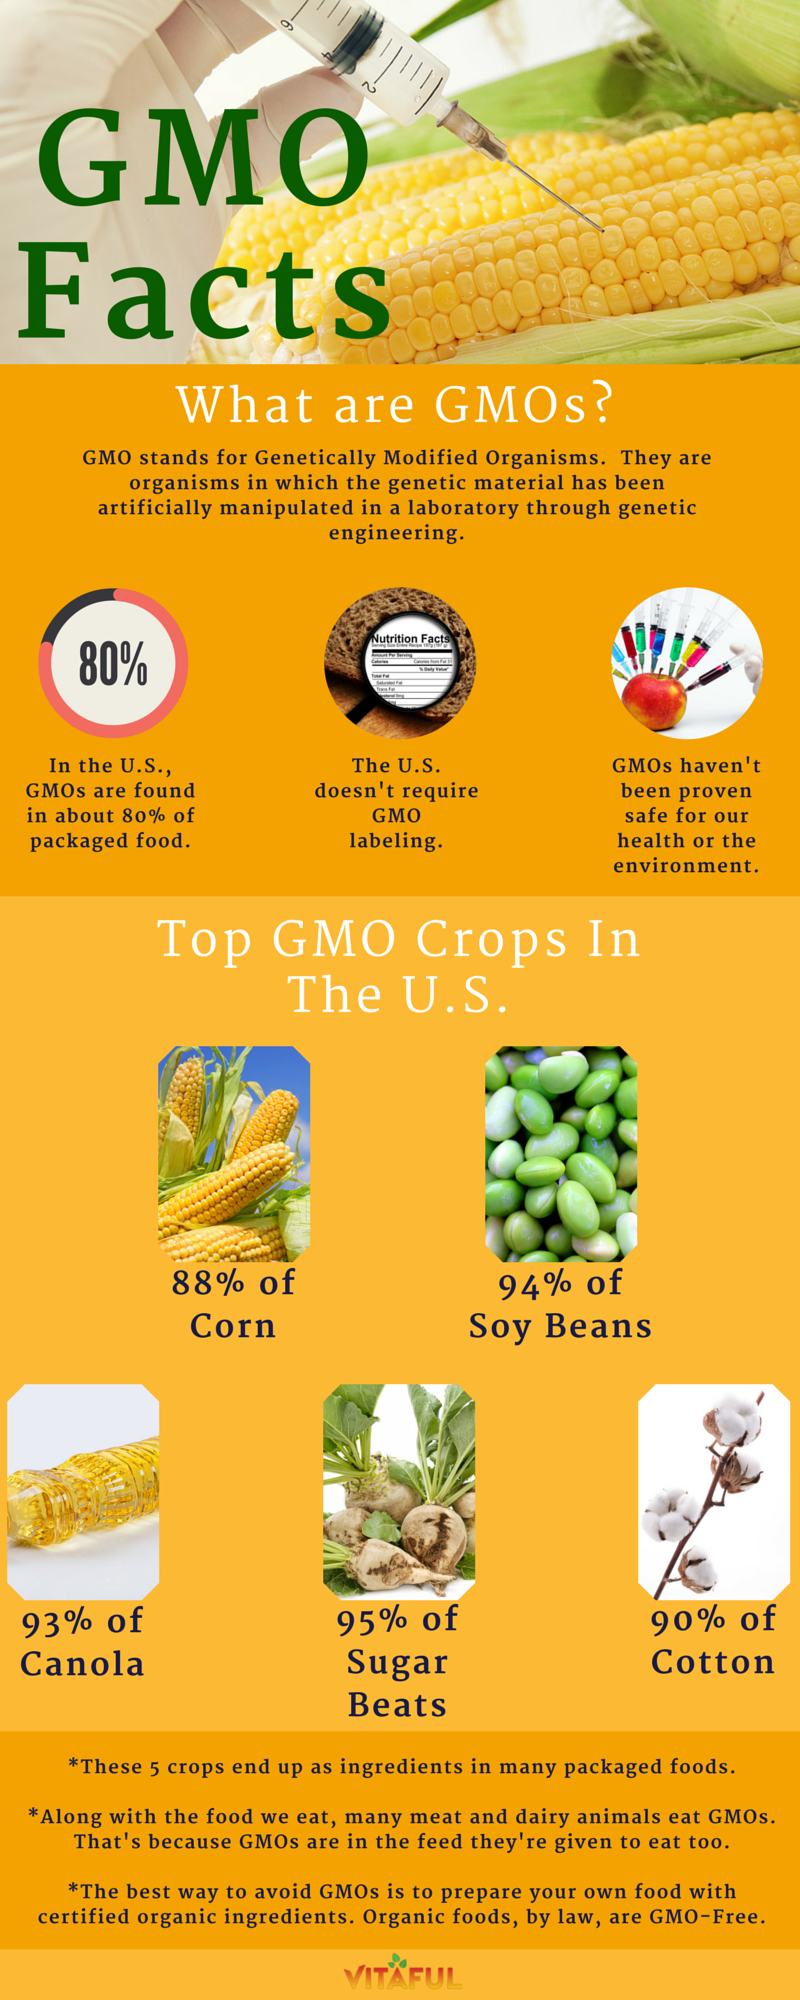 An Overview Of Gmos Includes A List Of Top Gmo Crops In The U S